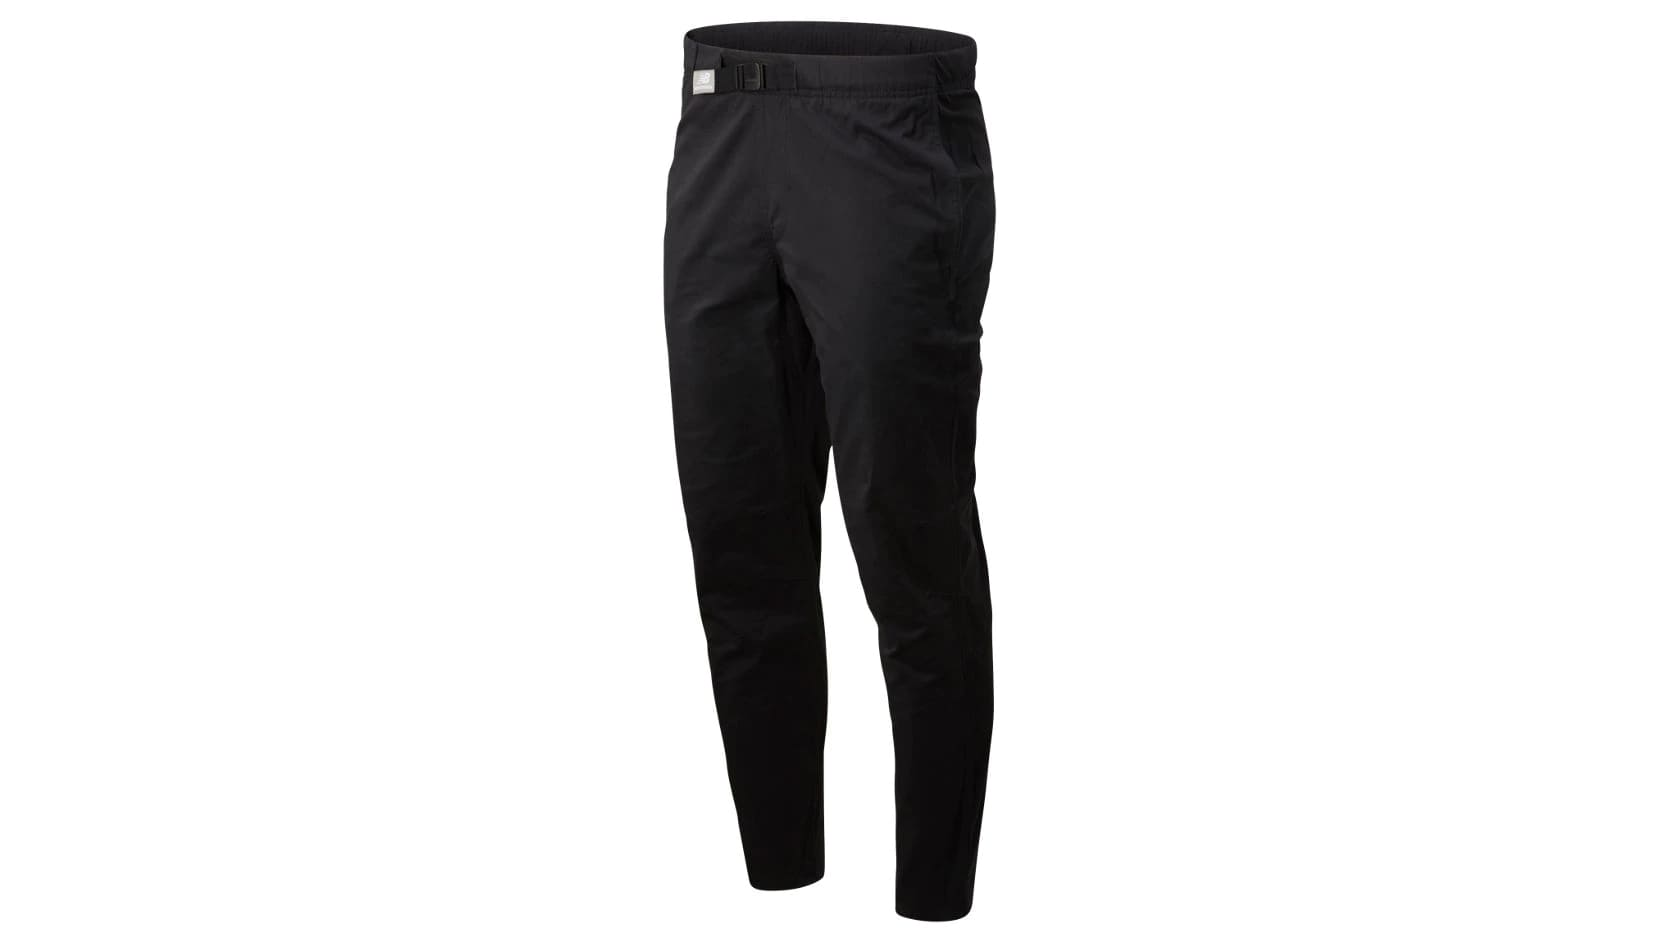 NB ATHLETICS WOVEN PANT